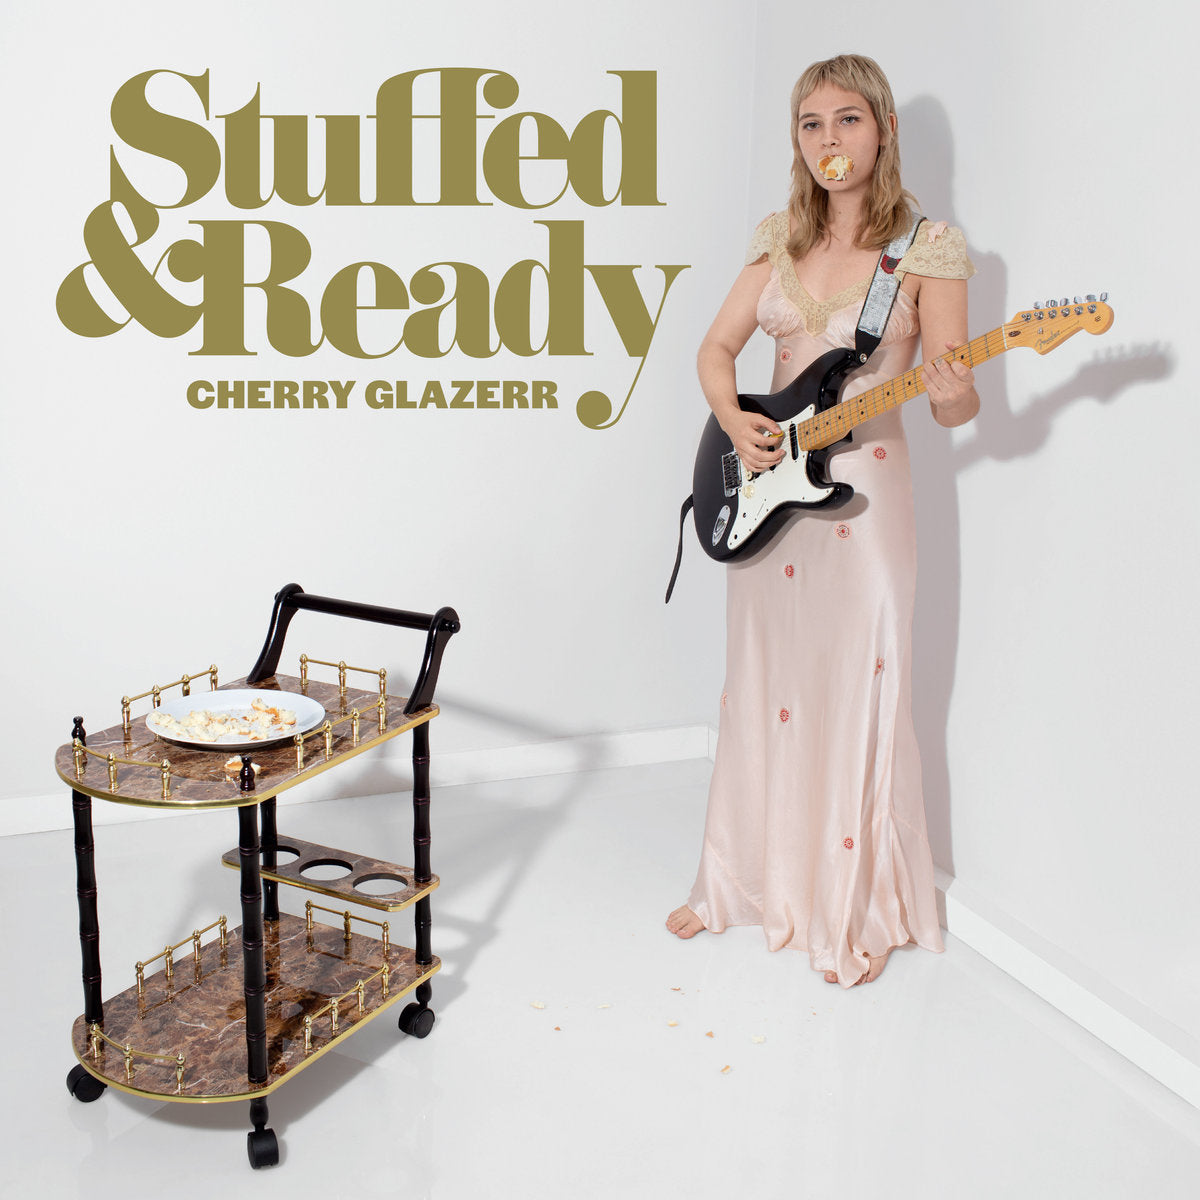 Cherry Glazerr - Stuffed & Ready LP - Vinyl